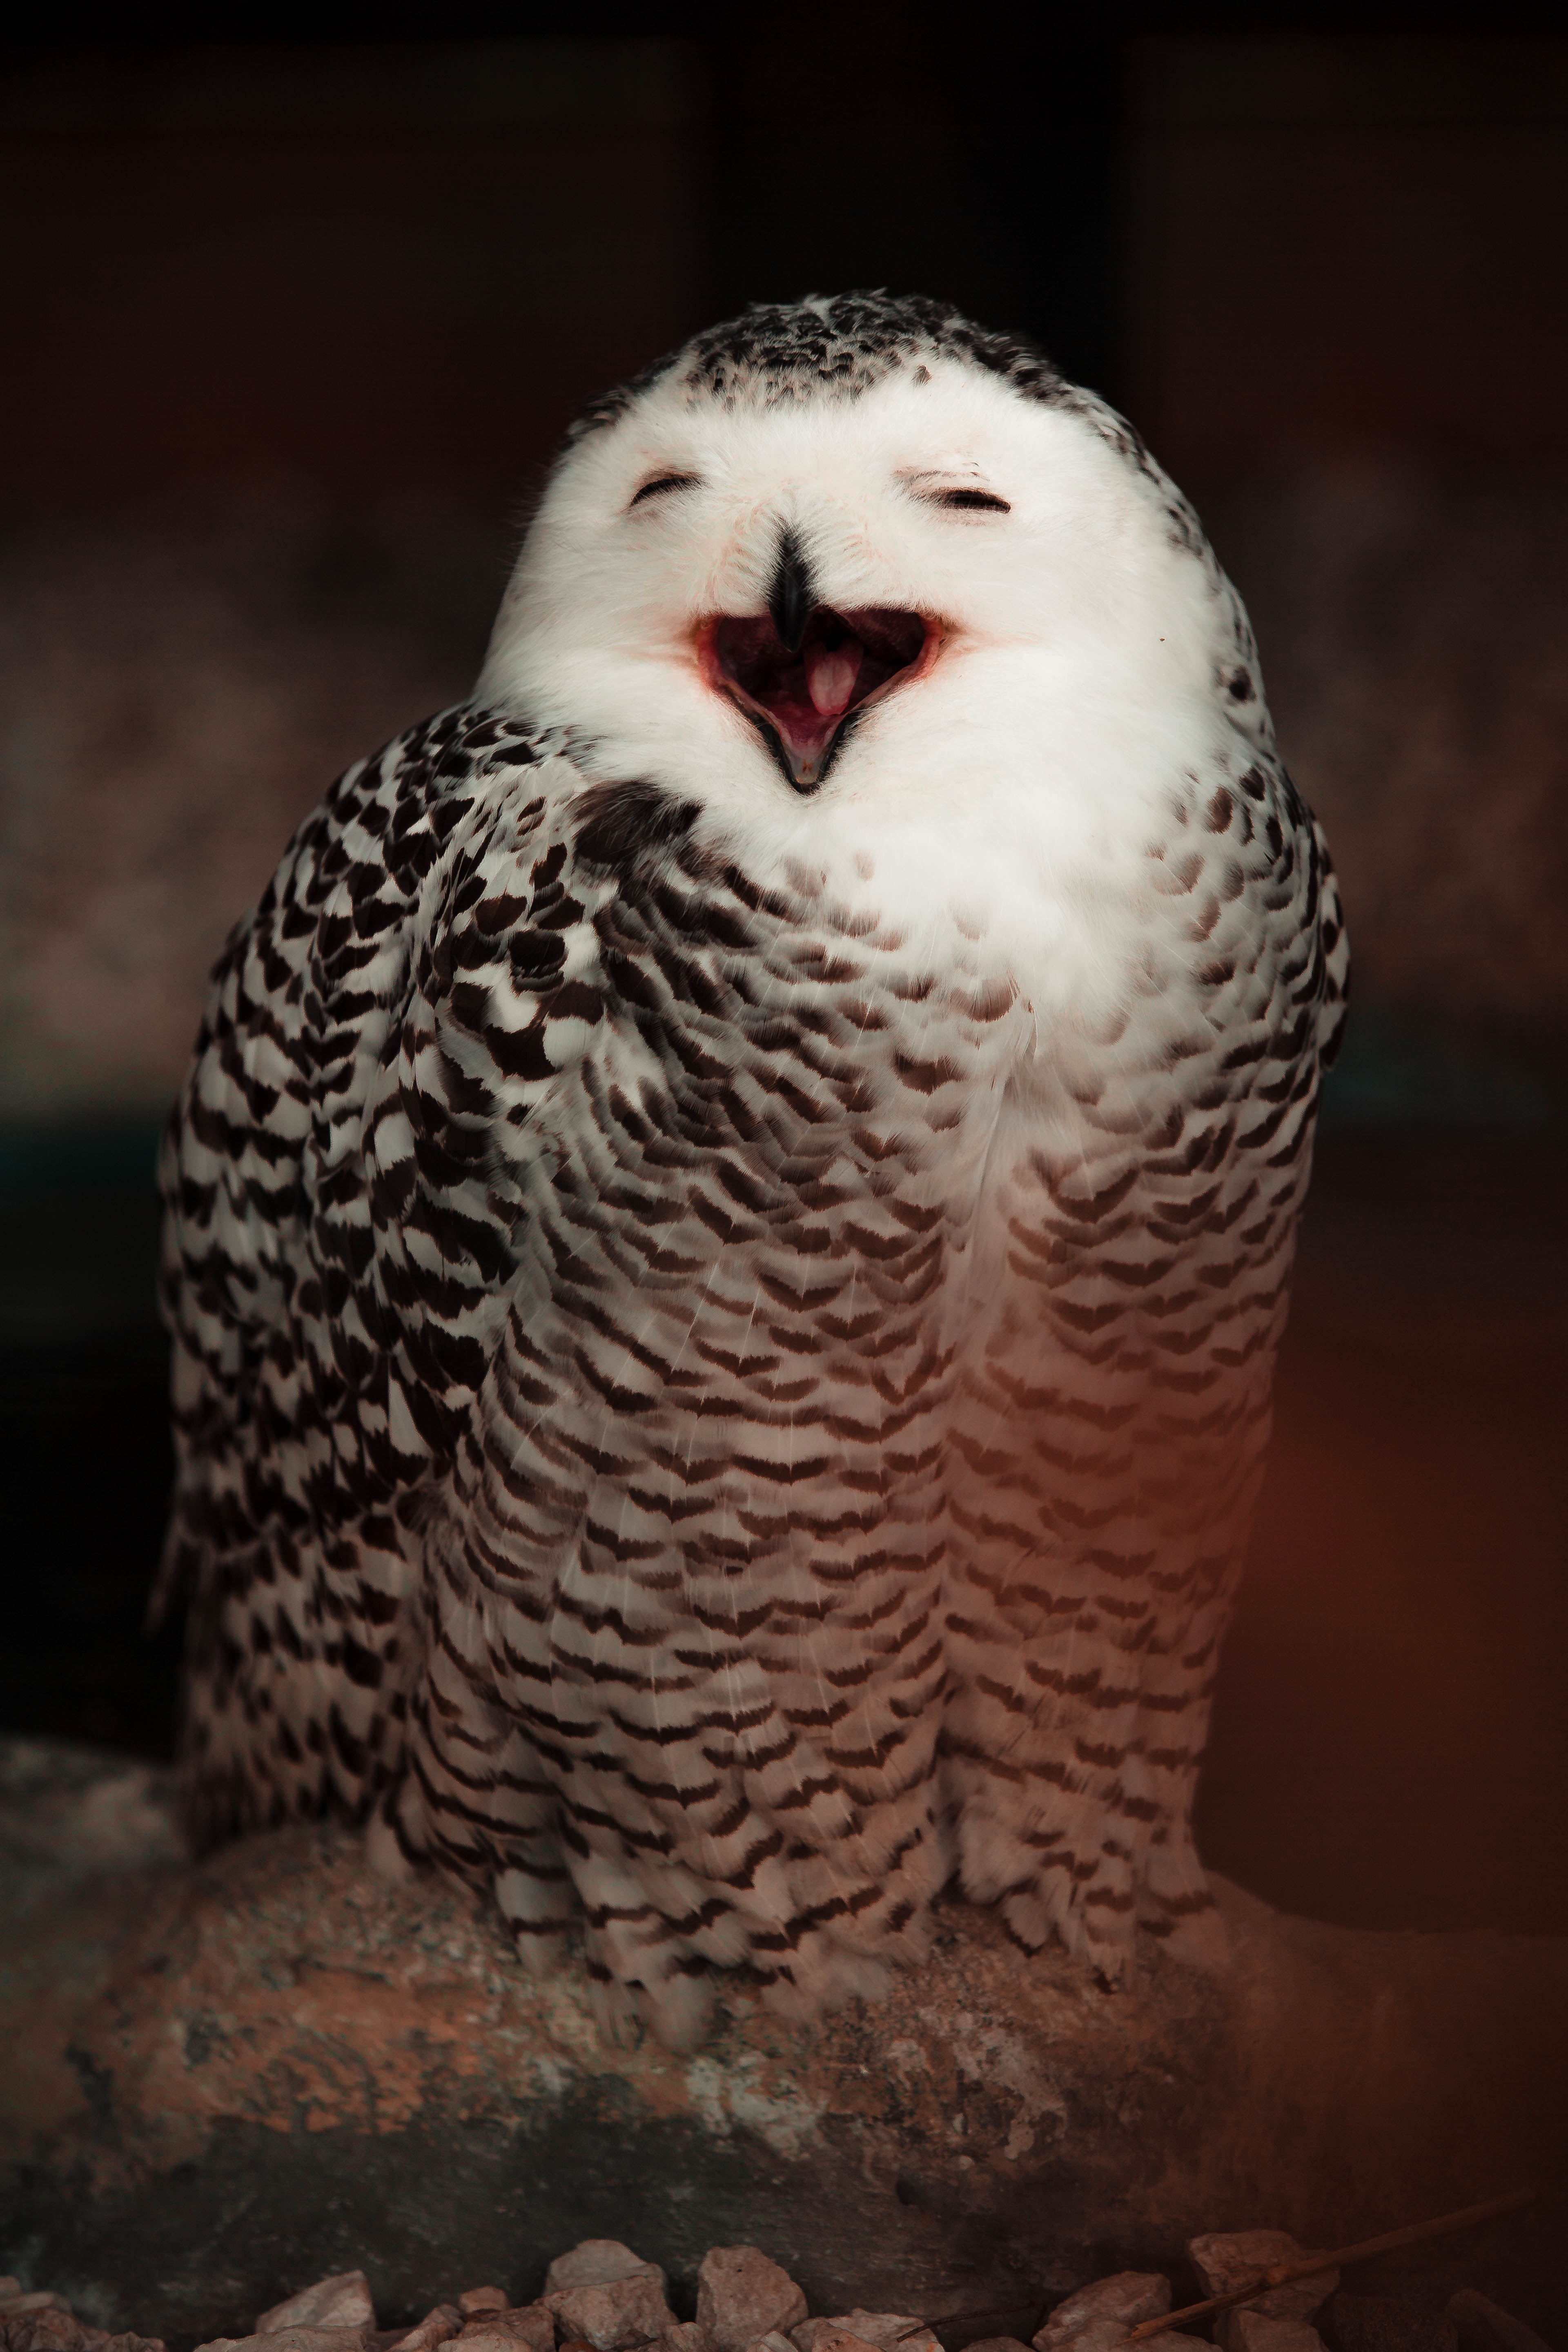 59687 download wallpaper Animals, Owl, Bird, Cool, Emotions, White Owl, Polar Owl screensavers and pictures for free